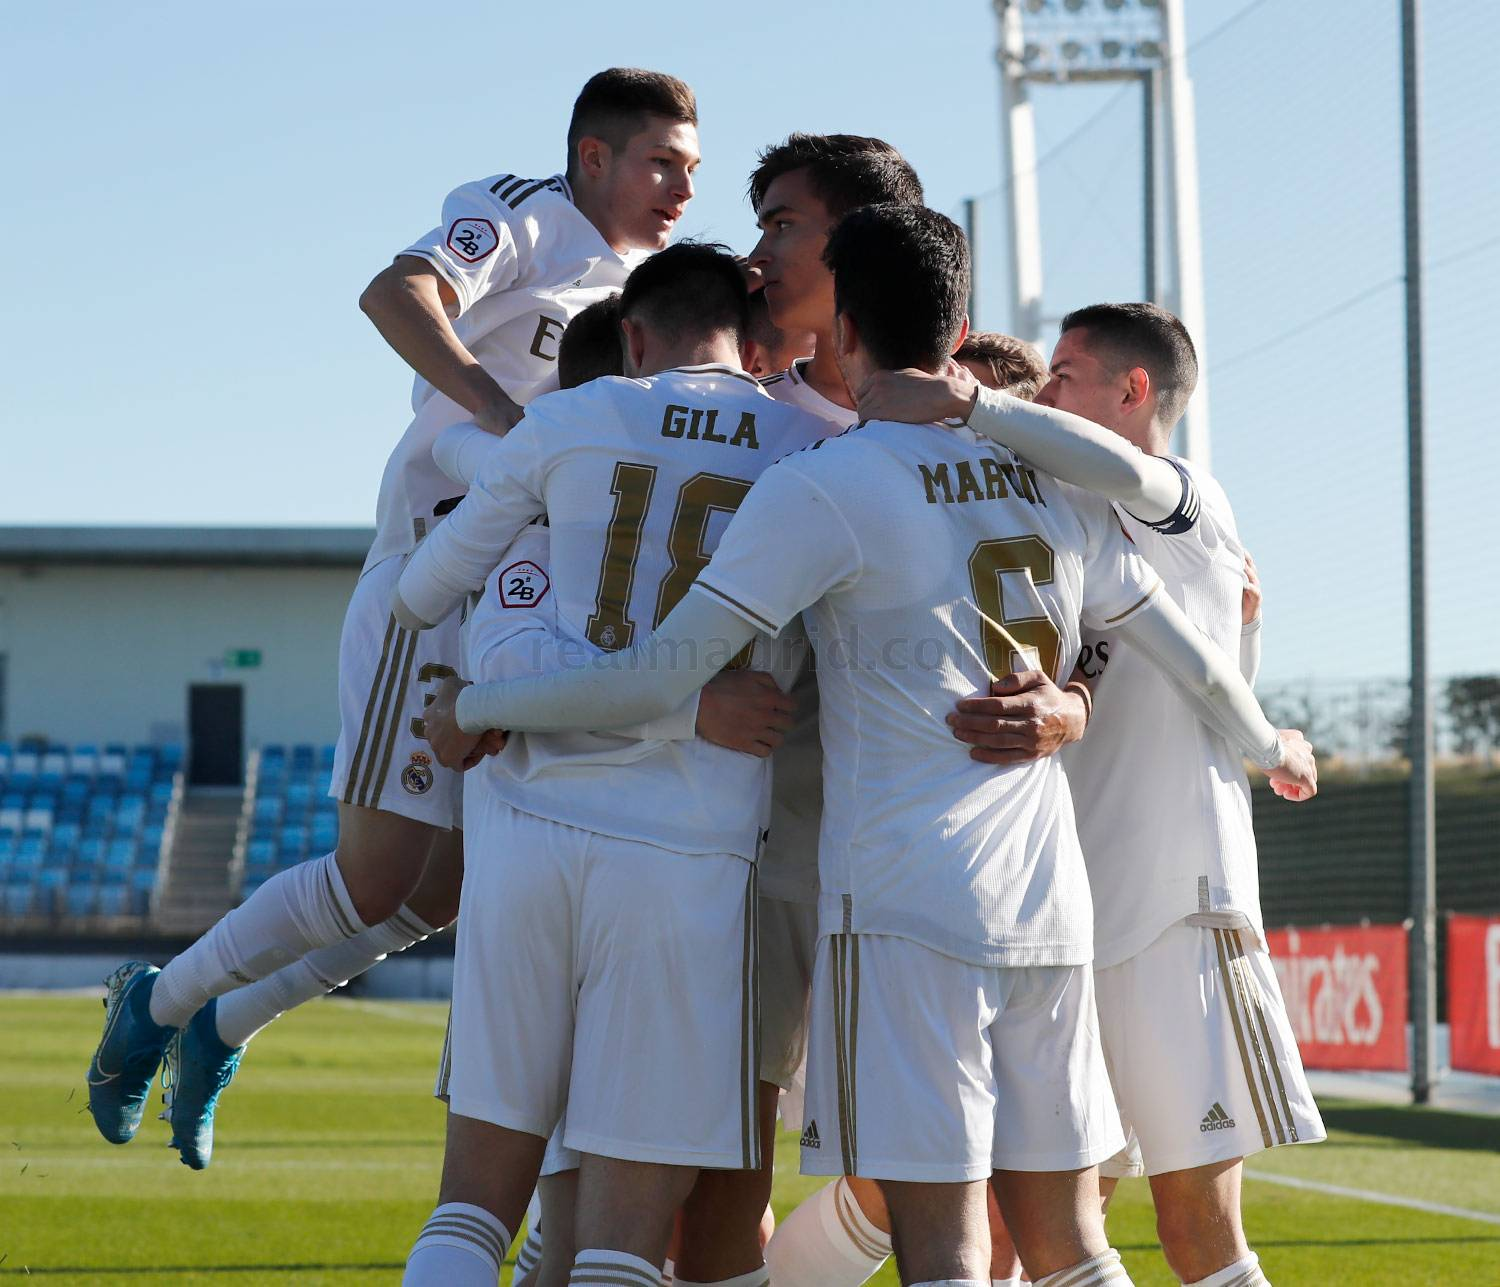 Real Madrid - Real Madrid Castilla - Melilla - 05-01-2020